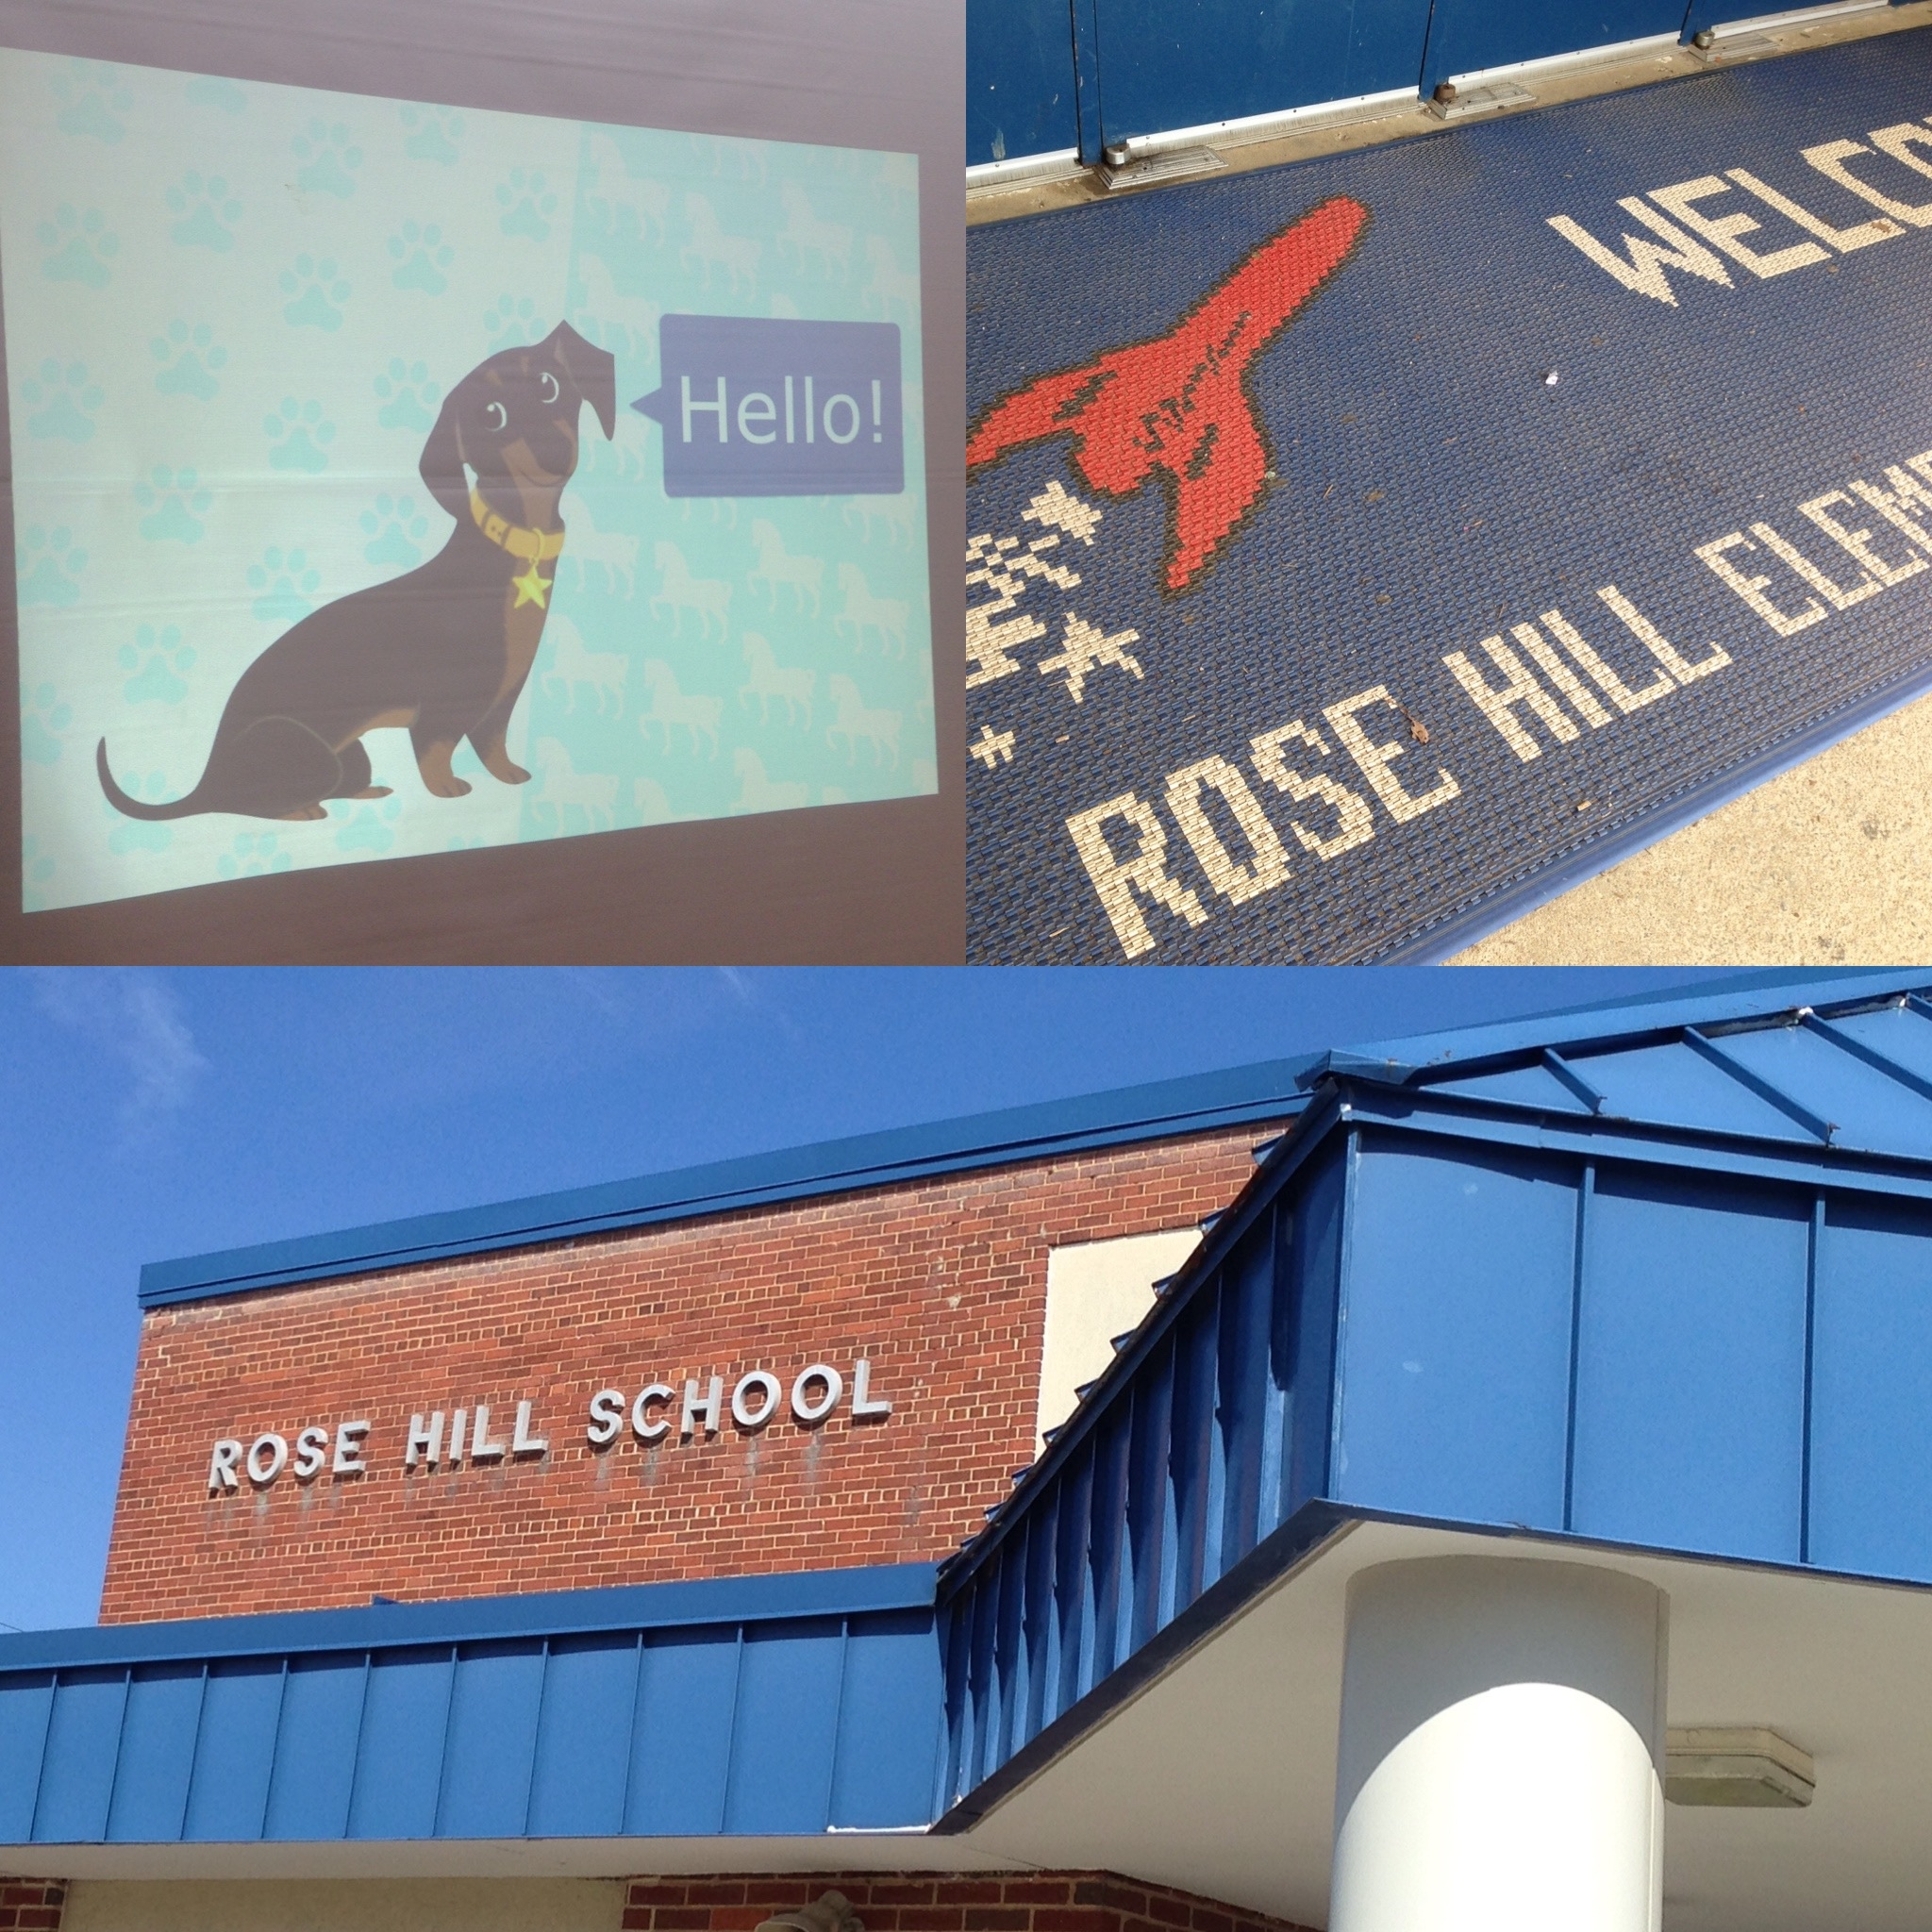 Rose Hill Elementary School